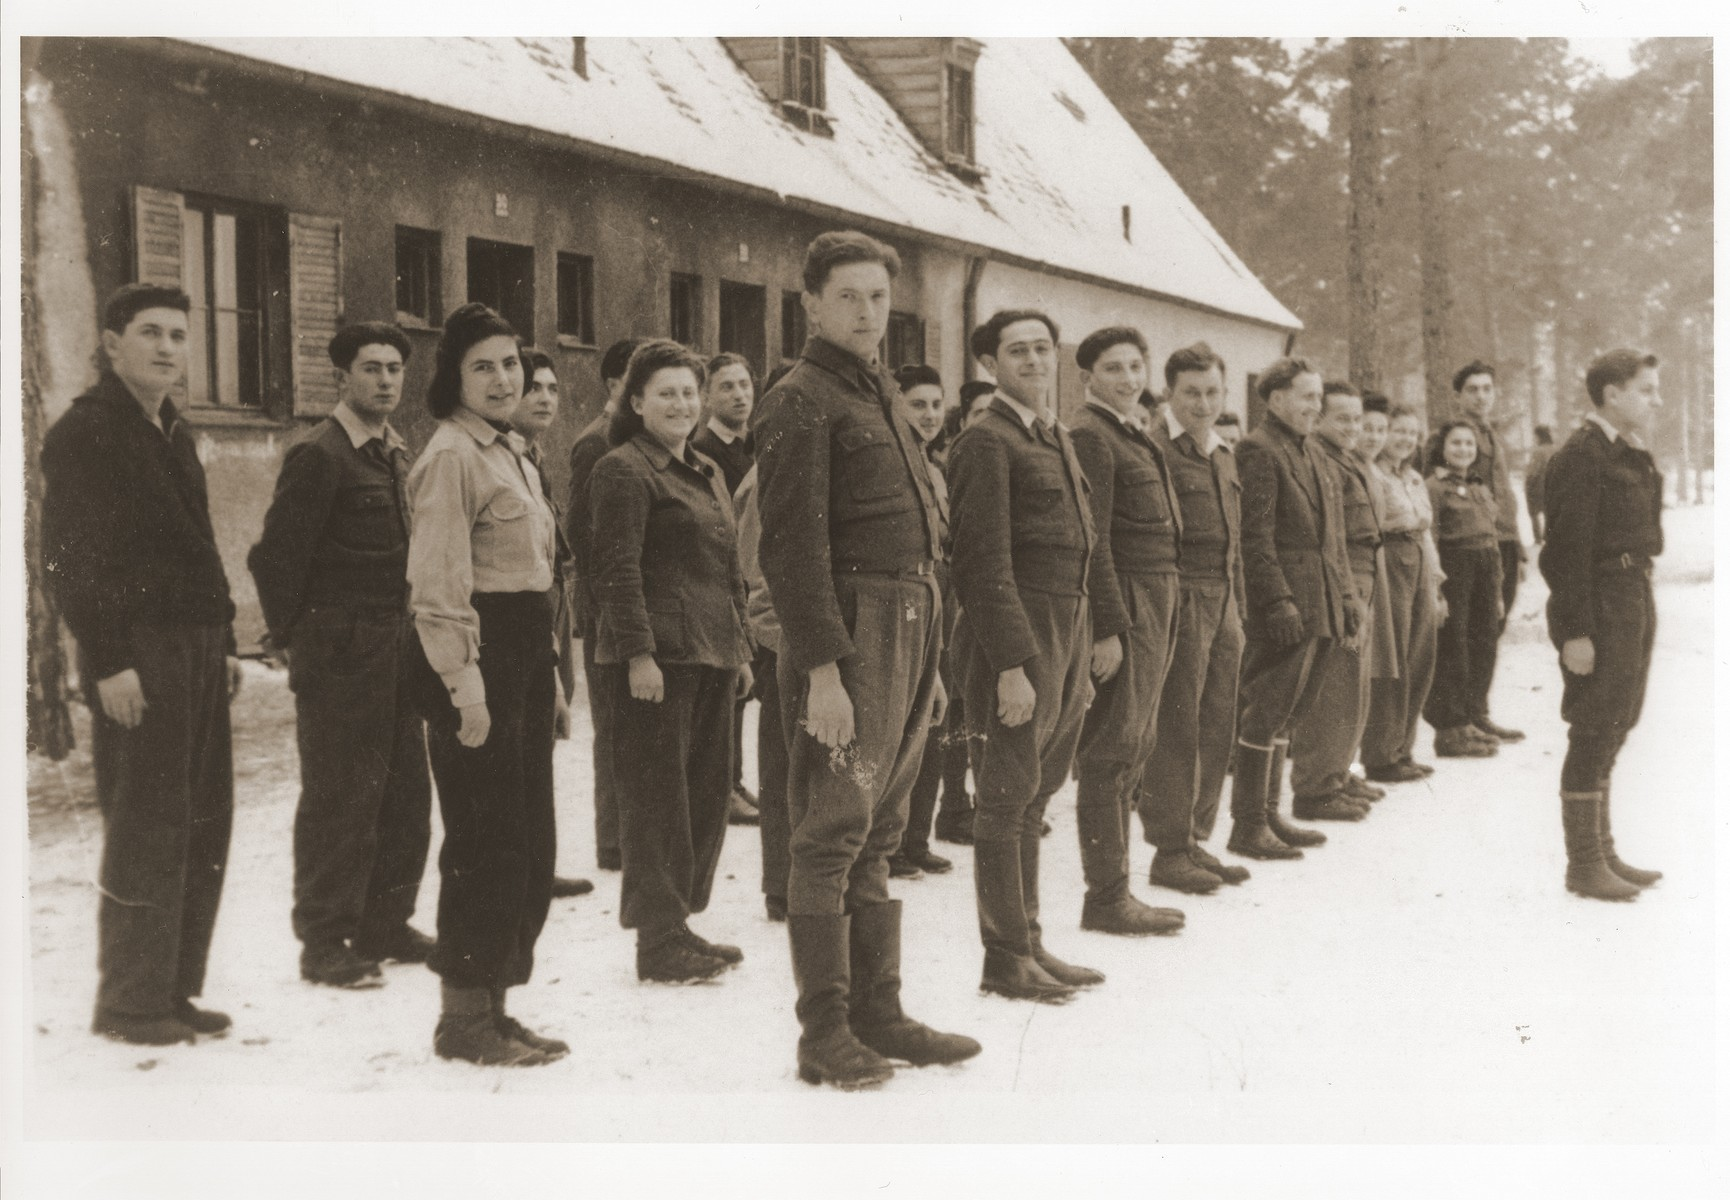 Zionist youth stand in formation outside a barracks in the Foehrenwald displaced persons camp.